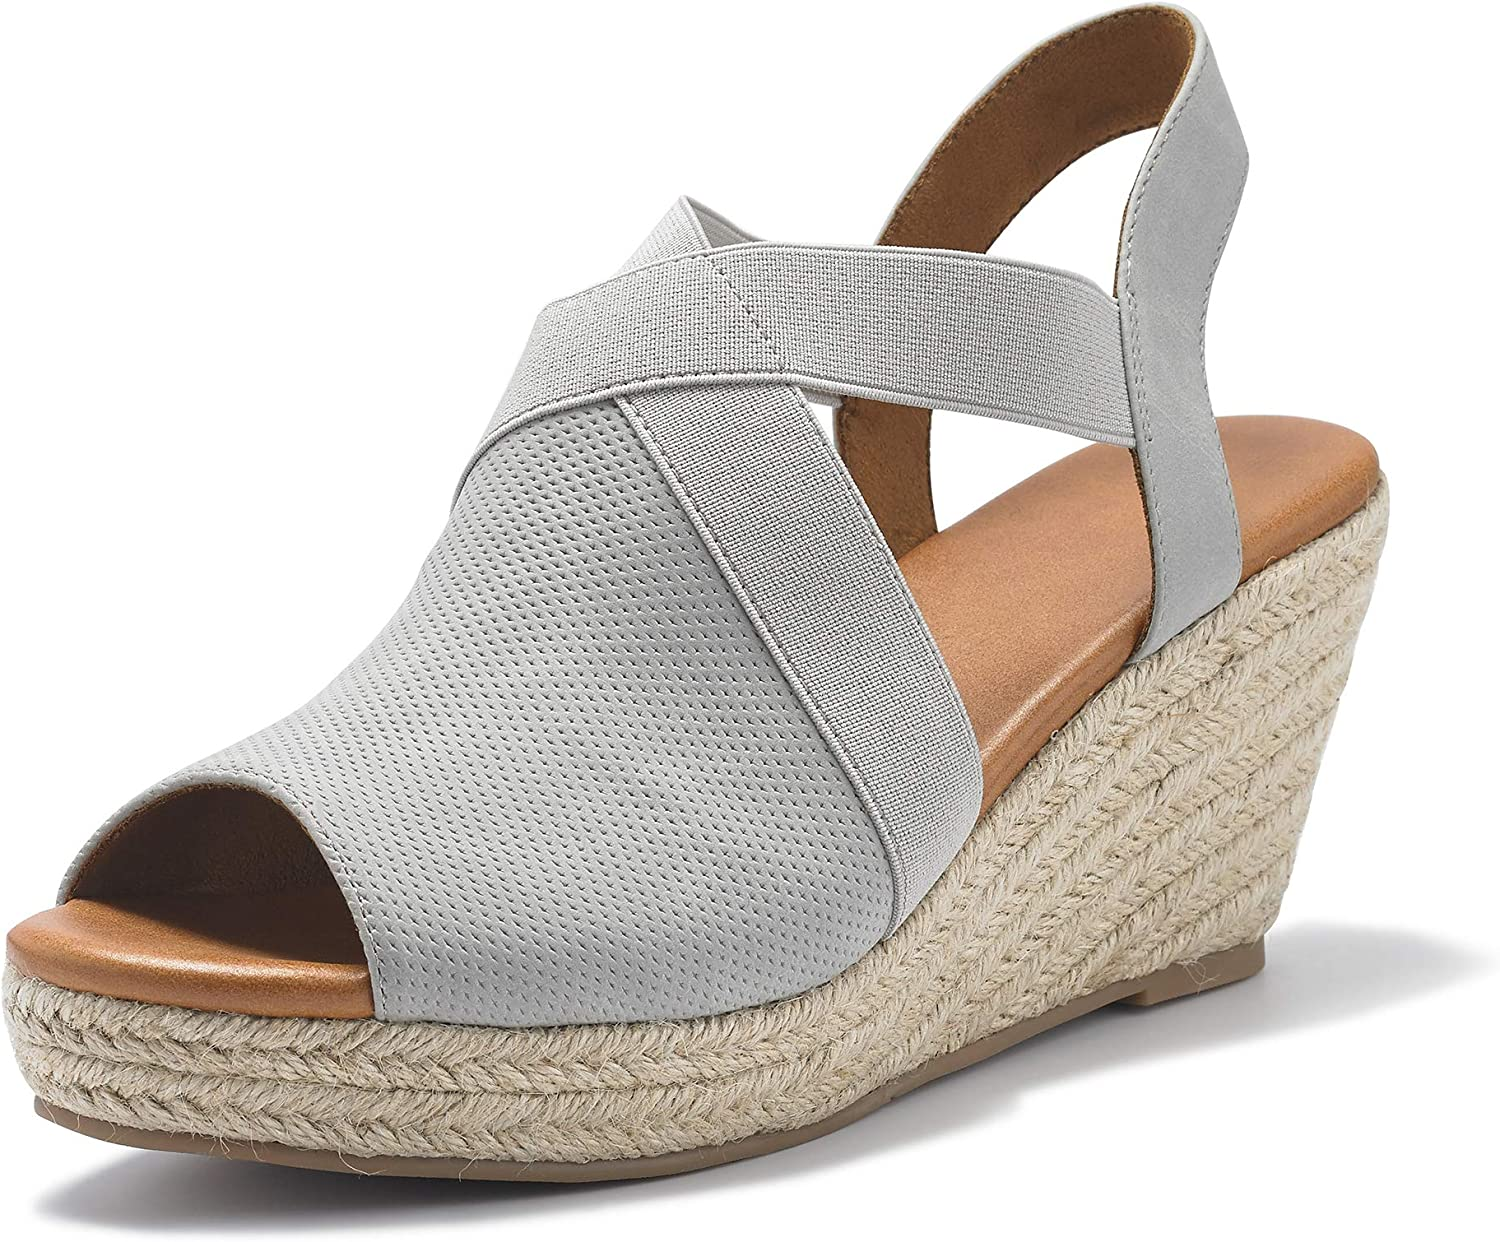 Womens Espadrille Platform Stretch Strappy Special Campaign Open Toe Peep NEW before selling M Wedge